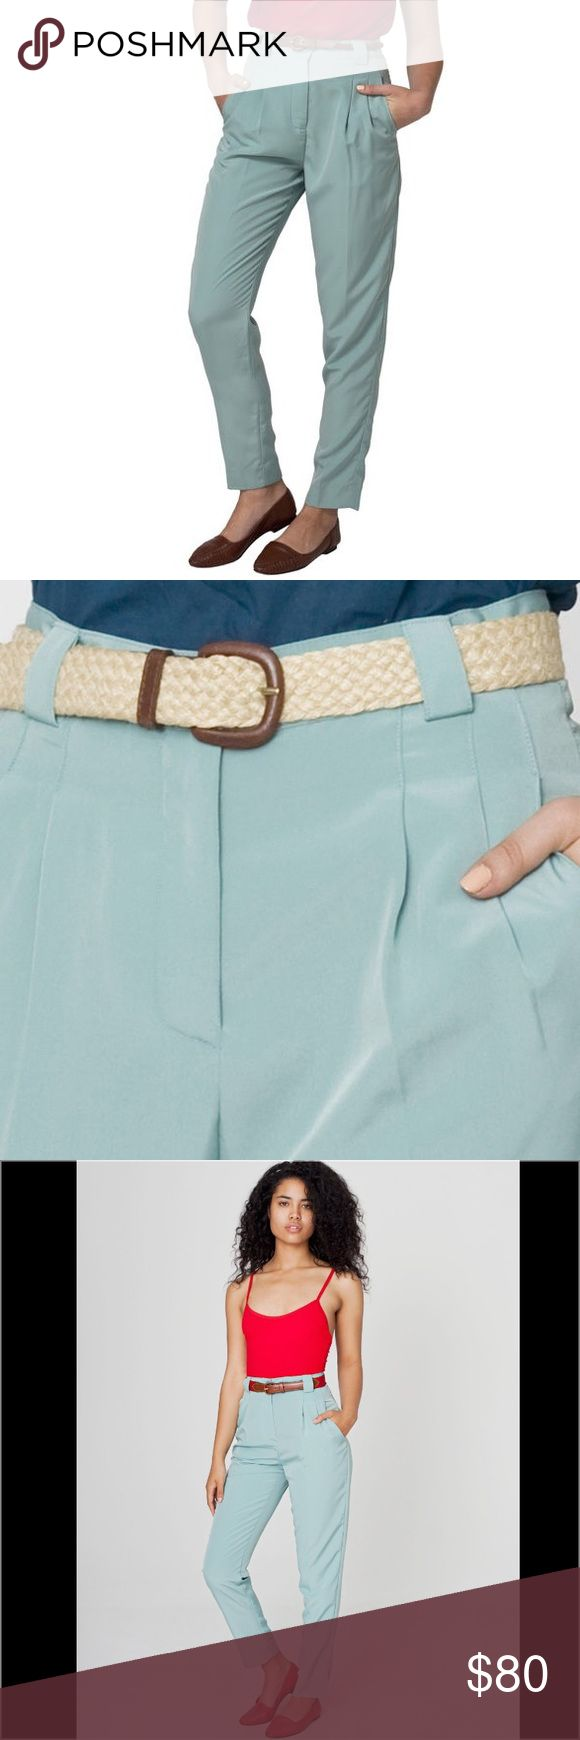 American Apparel Seafoam High-Waist Pleated Pants American Apparel  Size: Small  These comfortable and casual pleated trousers from American Apparel are constructed of smooth, high-end micro-polyester. These pants feature a classic high-waisted design with belt loops for a retro-inspired look. .  •Color: Seafoam •Fit: Trouser •Two (2) side pockets •Belt loops •Zipper fly American Apparel Pants Trousers